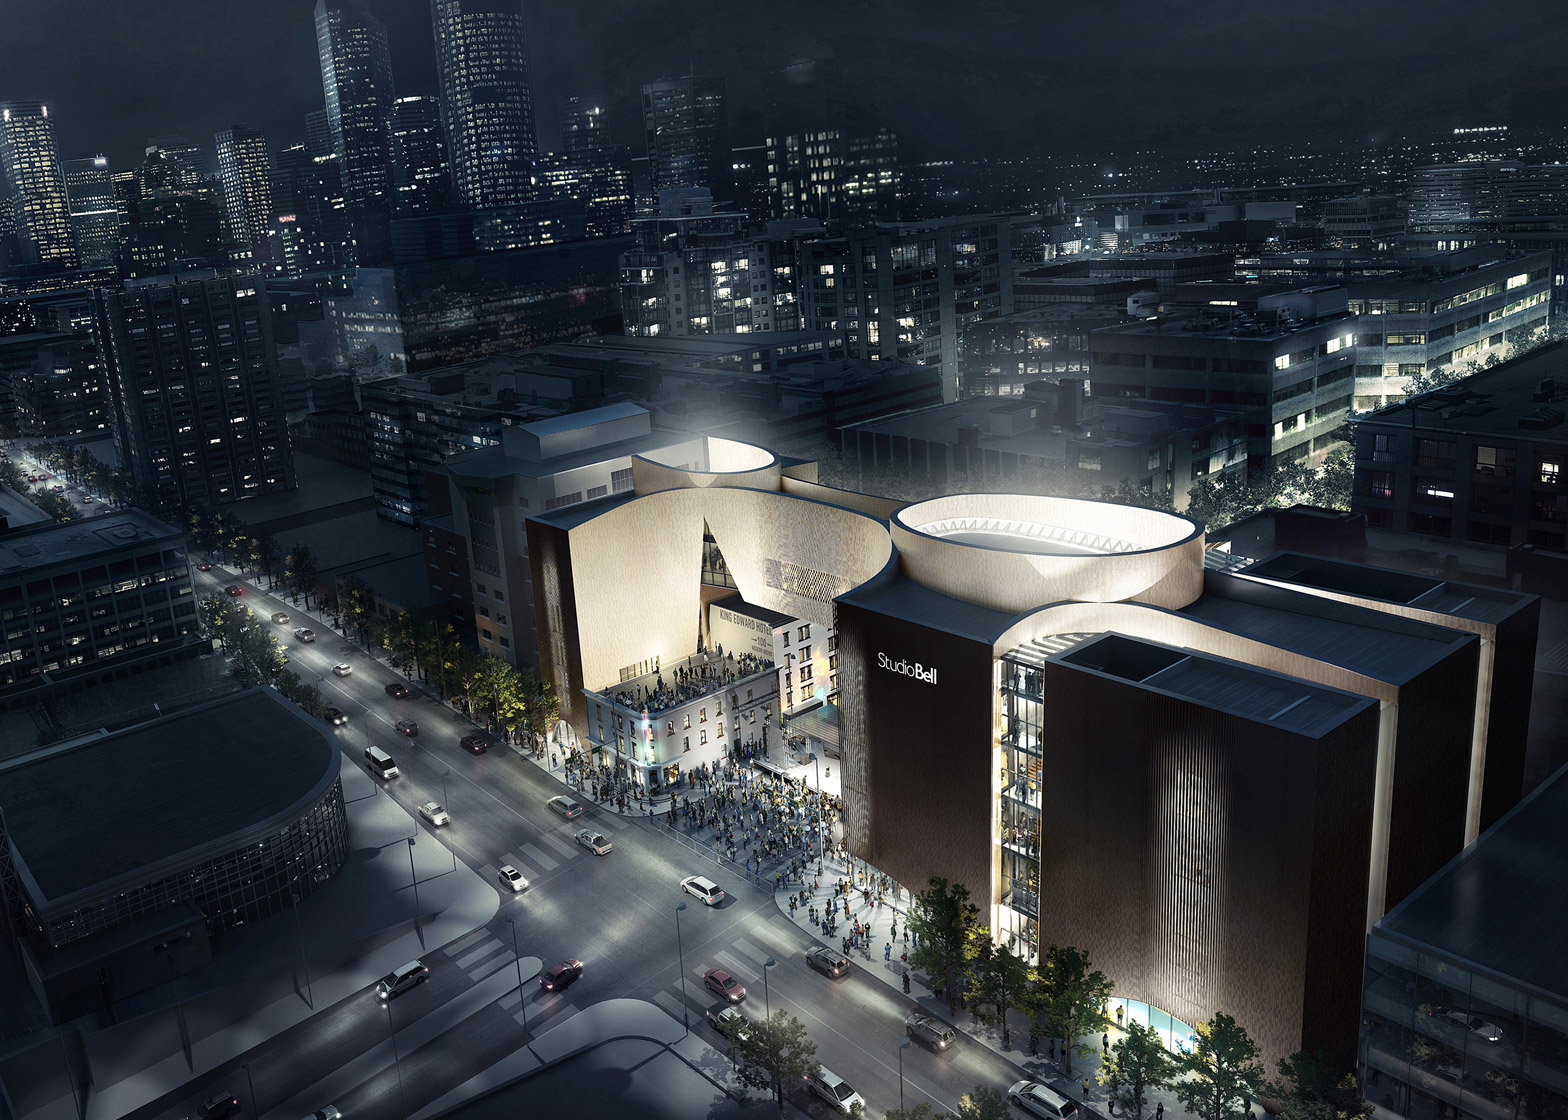 National Music Centre in Calgary, Canada by Allied Works. Image by Mir